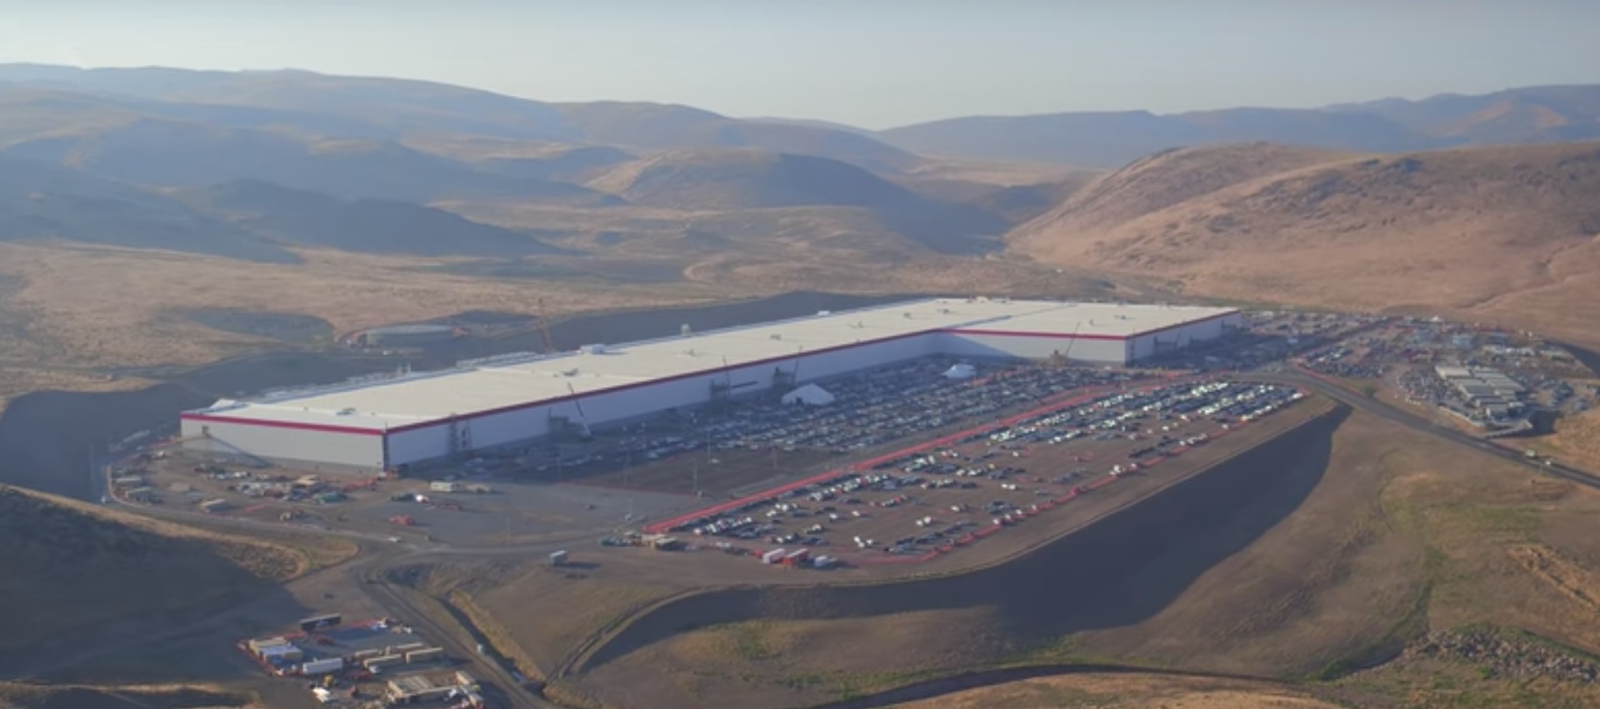 Tesla Gigafactory Is Already Producing More Batteries Than Any Other Factory In The World Says Elon Musk Fred Lambert Aug 8th Tesla New Drone Drone Video